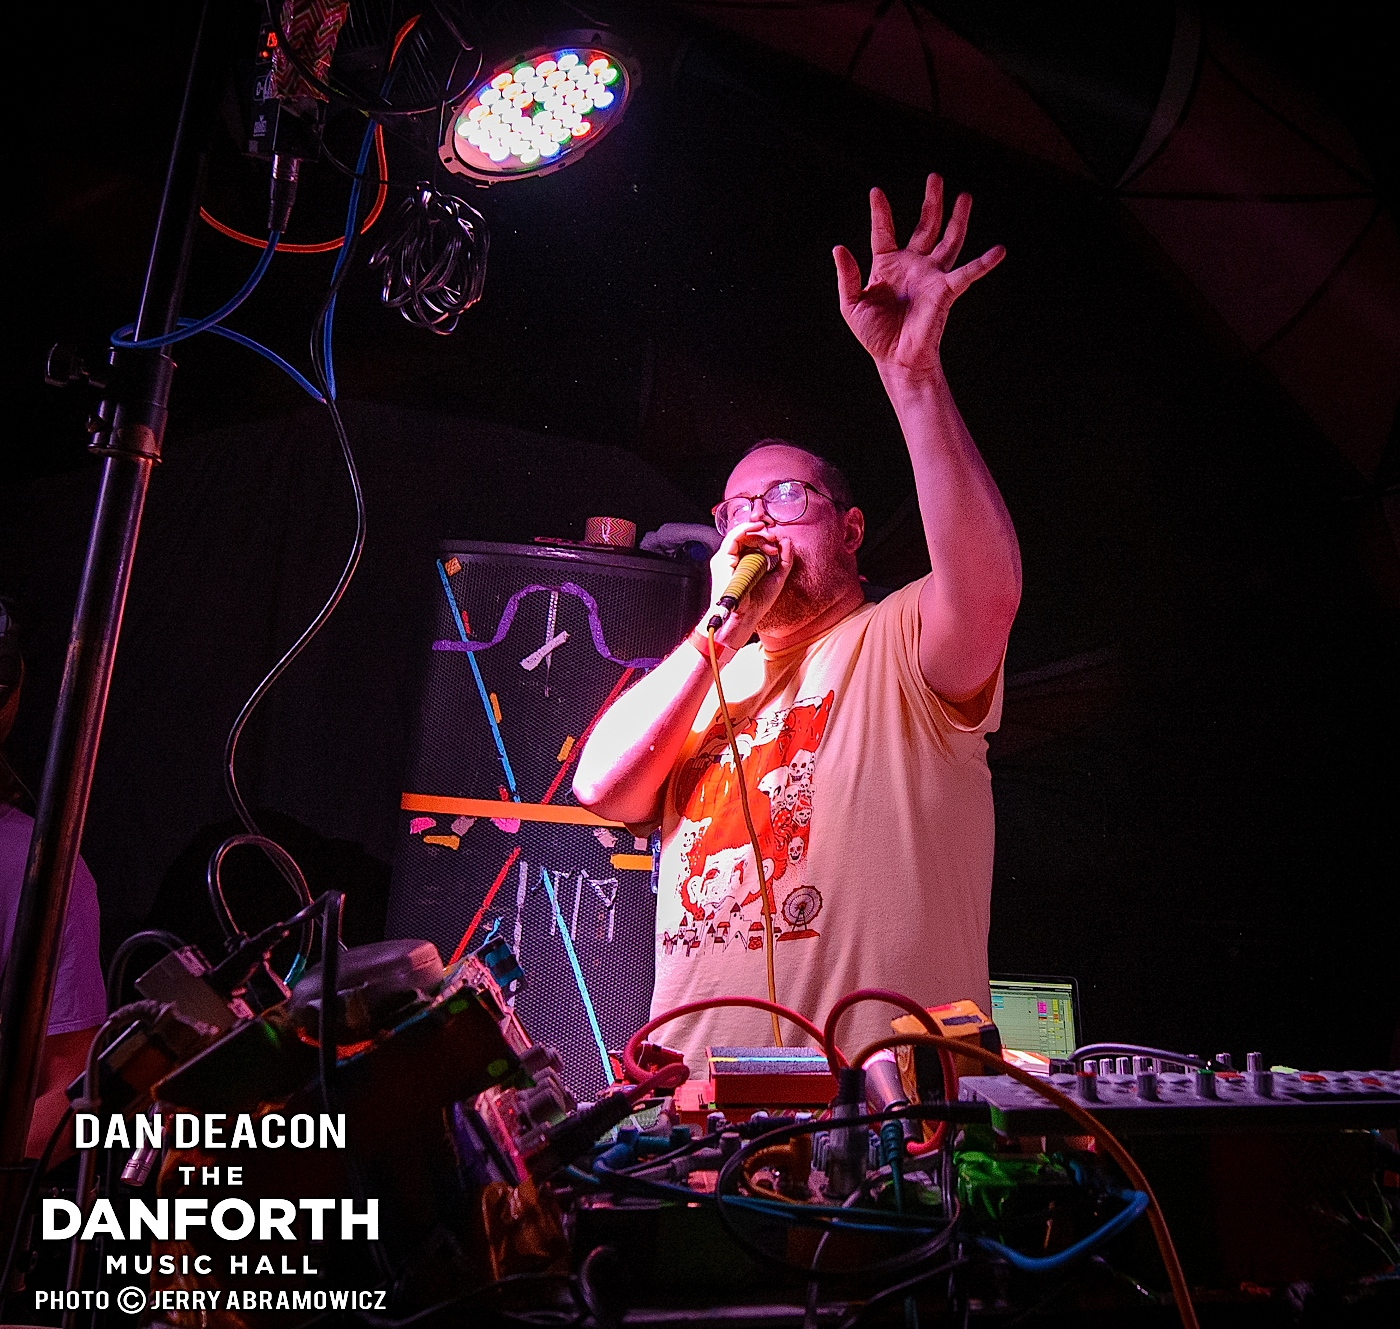 DAN DEACON opens for Animal Collective at The Danforth Music Hall Toronto.